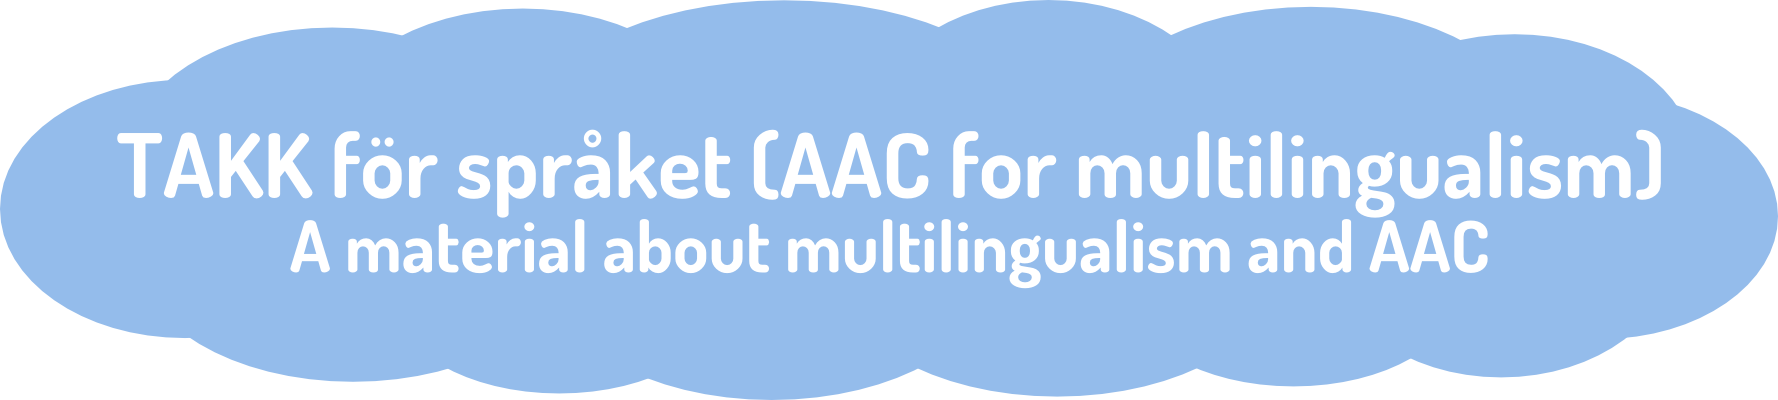 Takk för språket (AAC for multilingualism) – a material about multilingualism and AAC